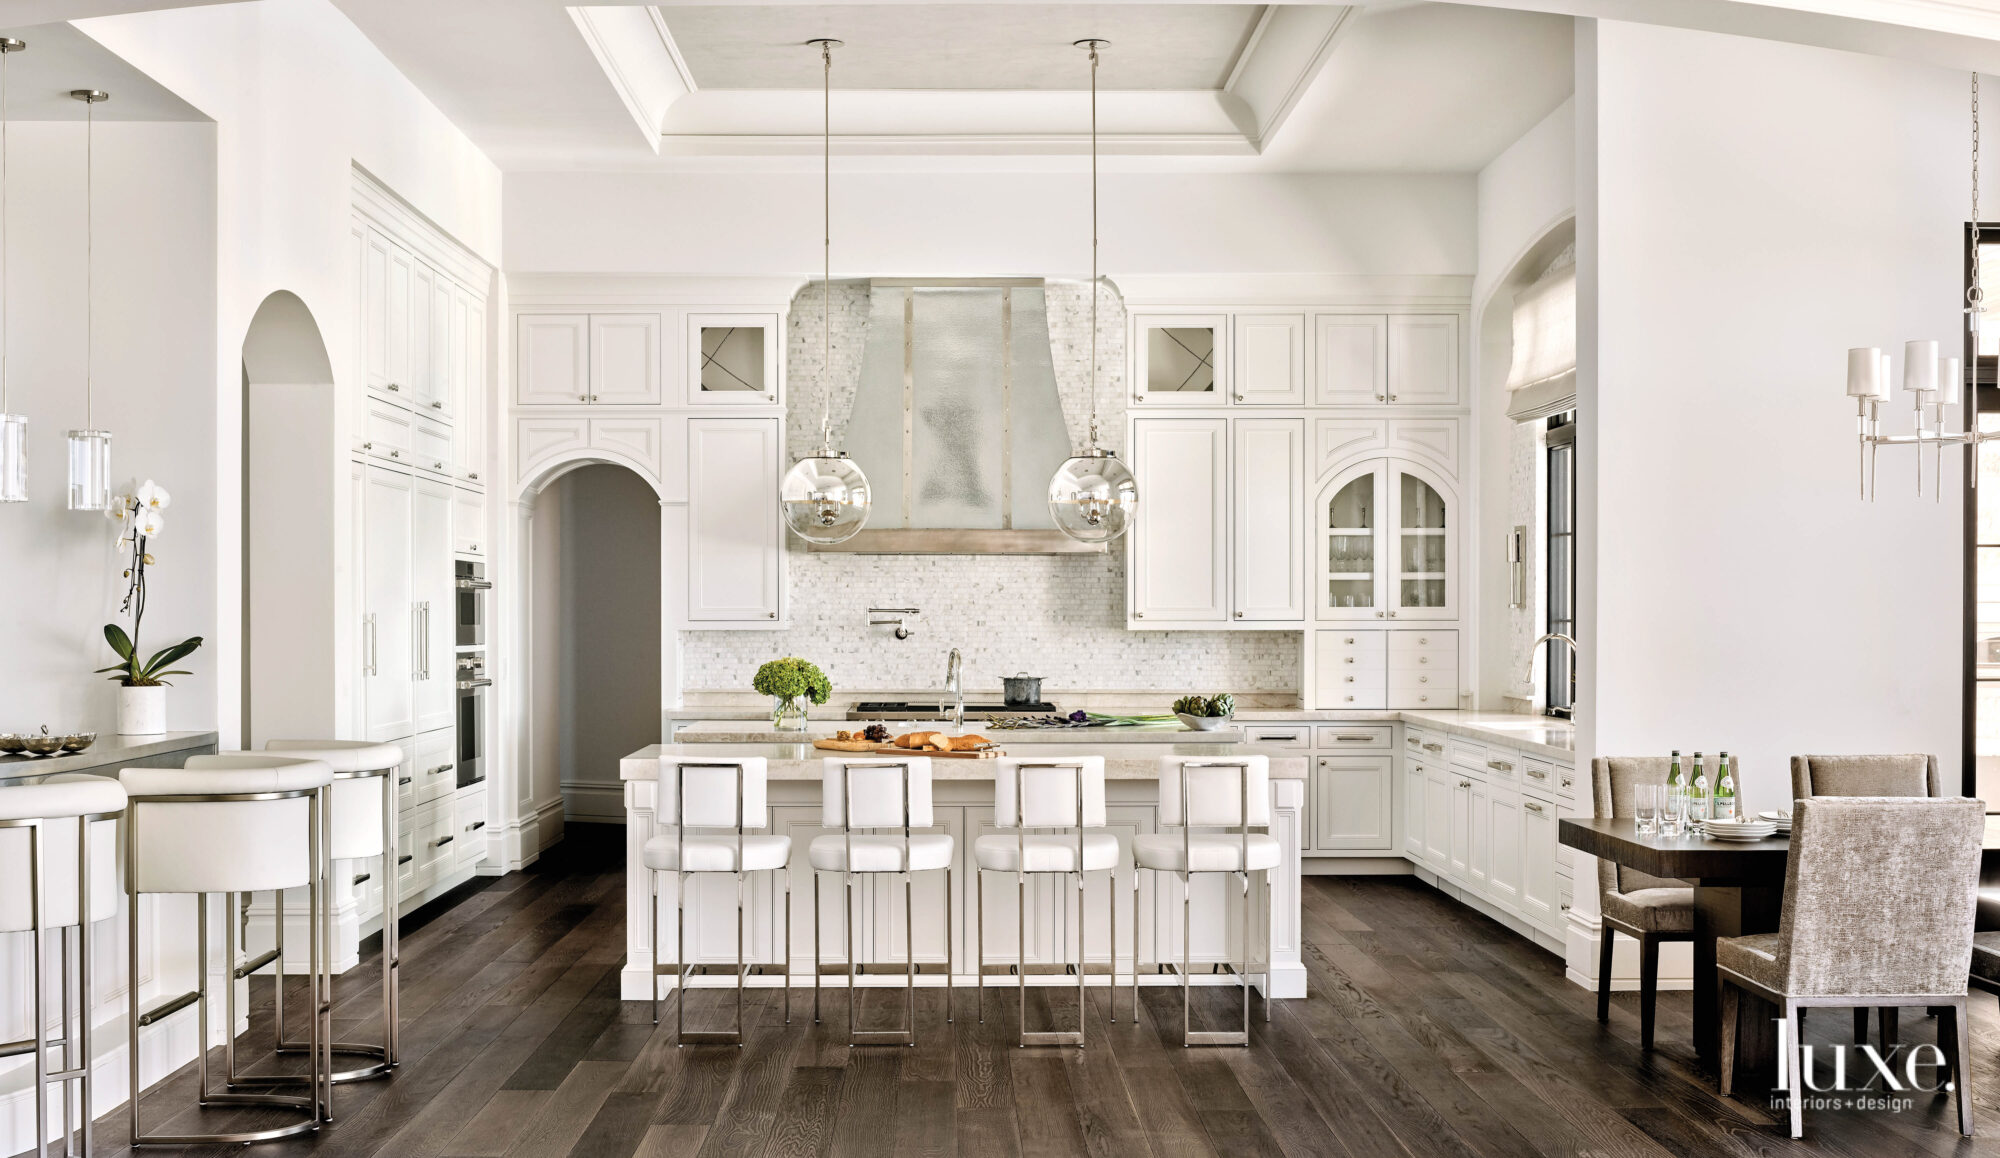 The all-white kitchen features a...